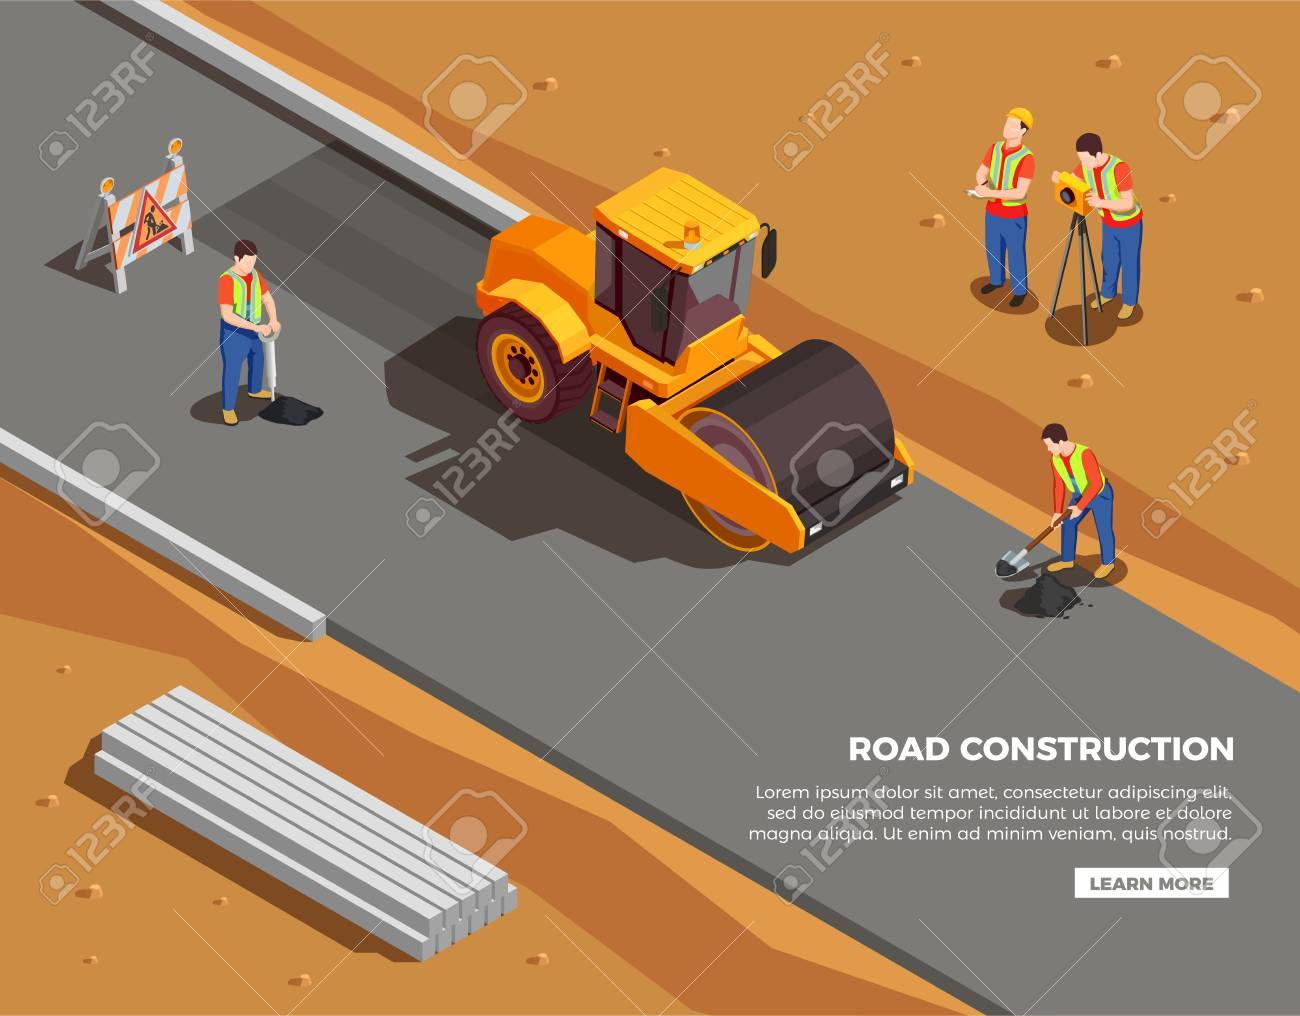 Builders and surveyors with machinery and warning signs during road construction isometric composition vector illustration - 109877149